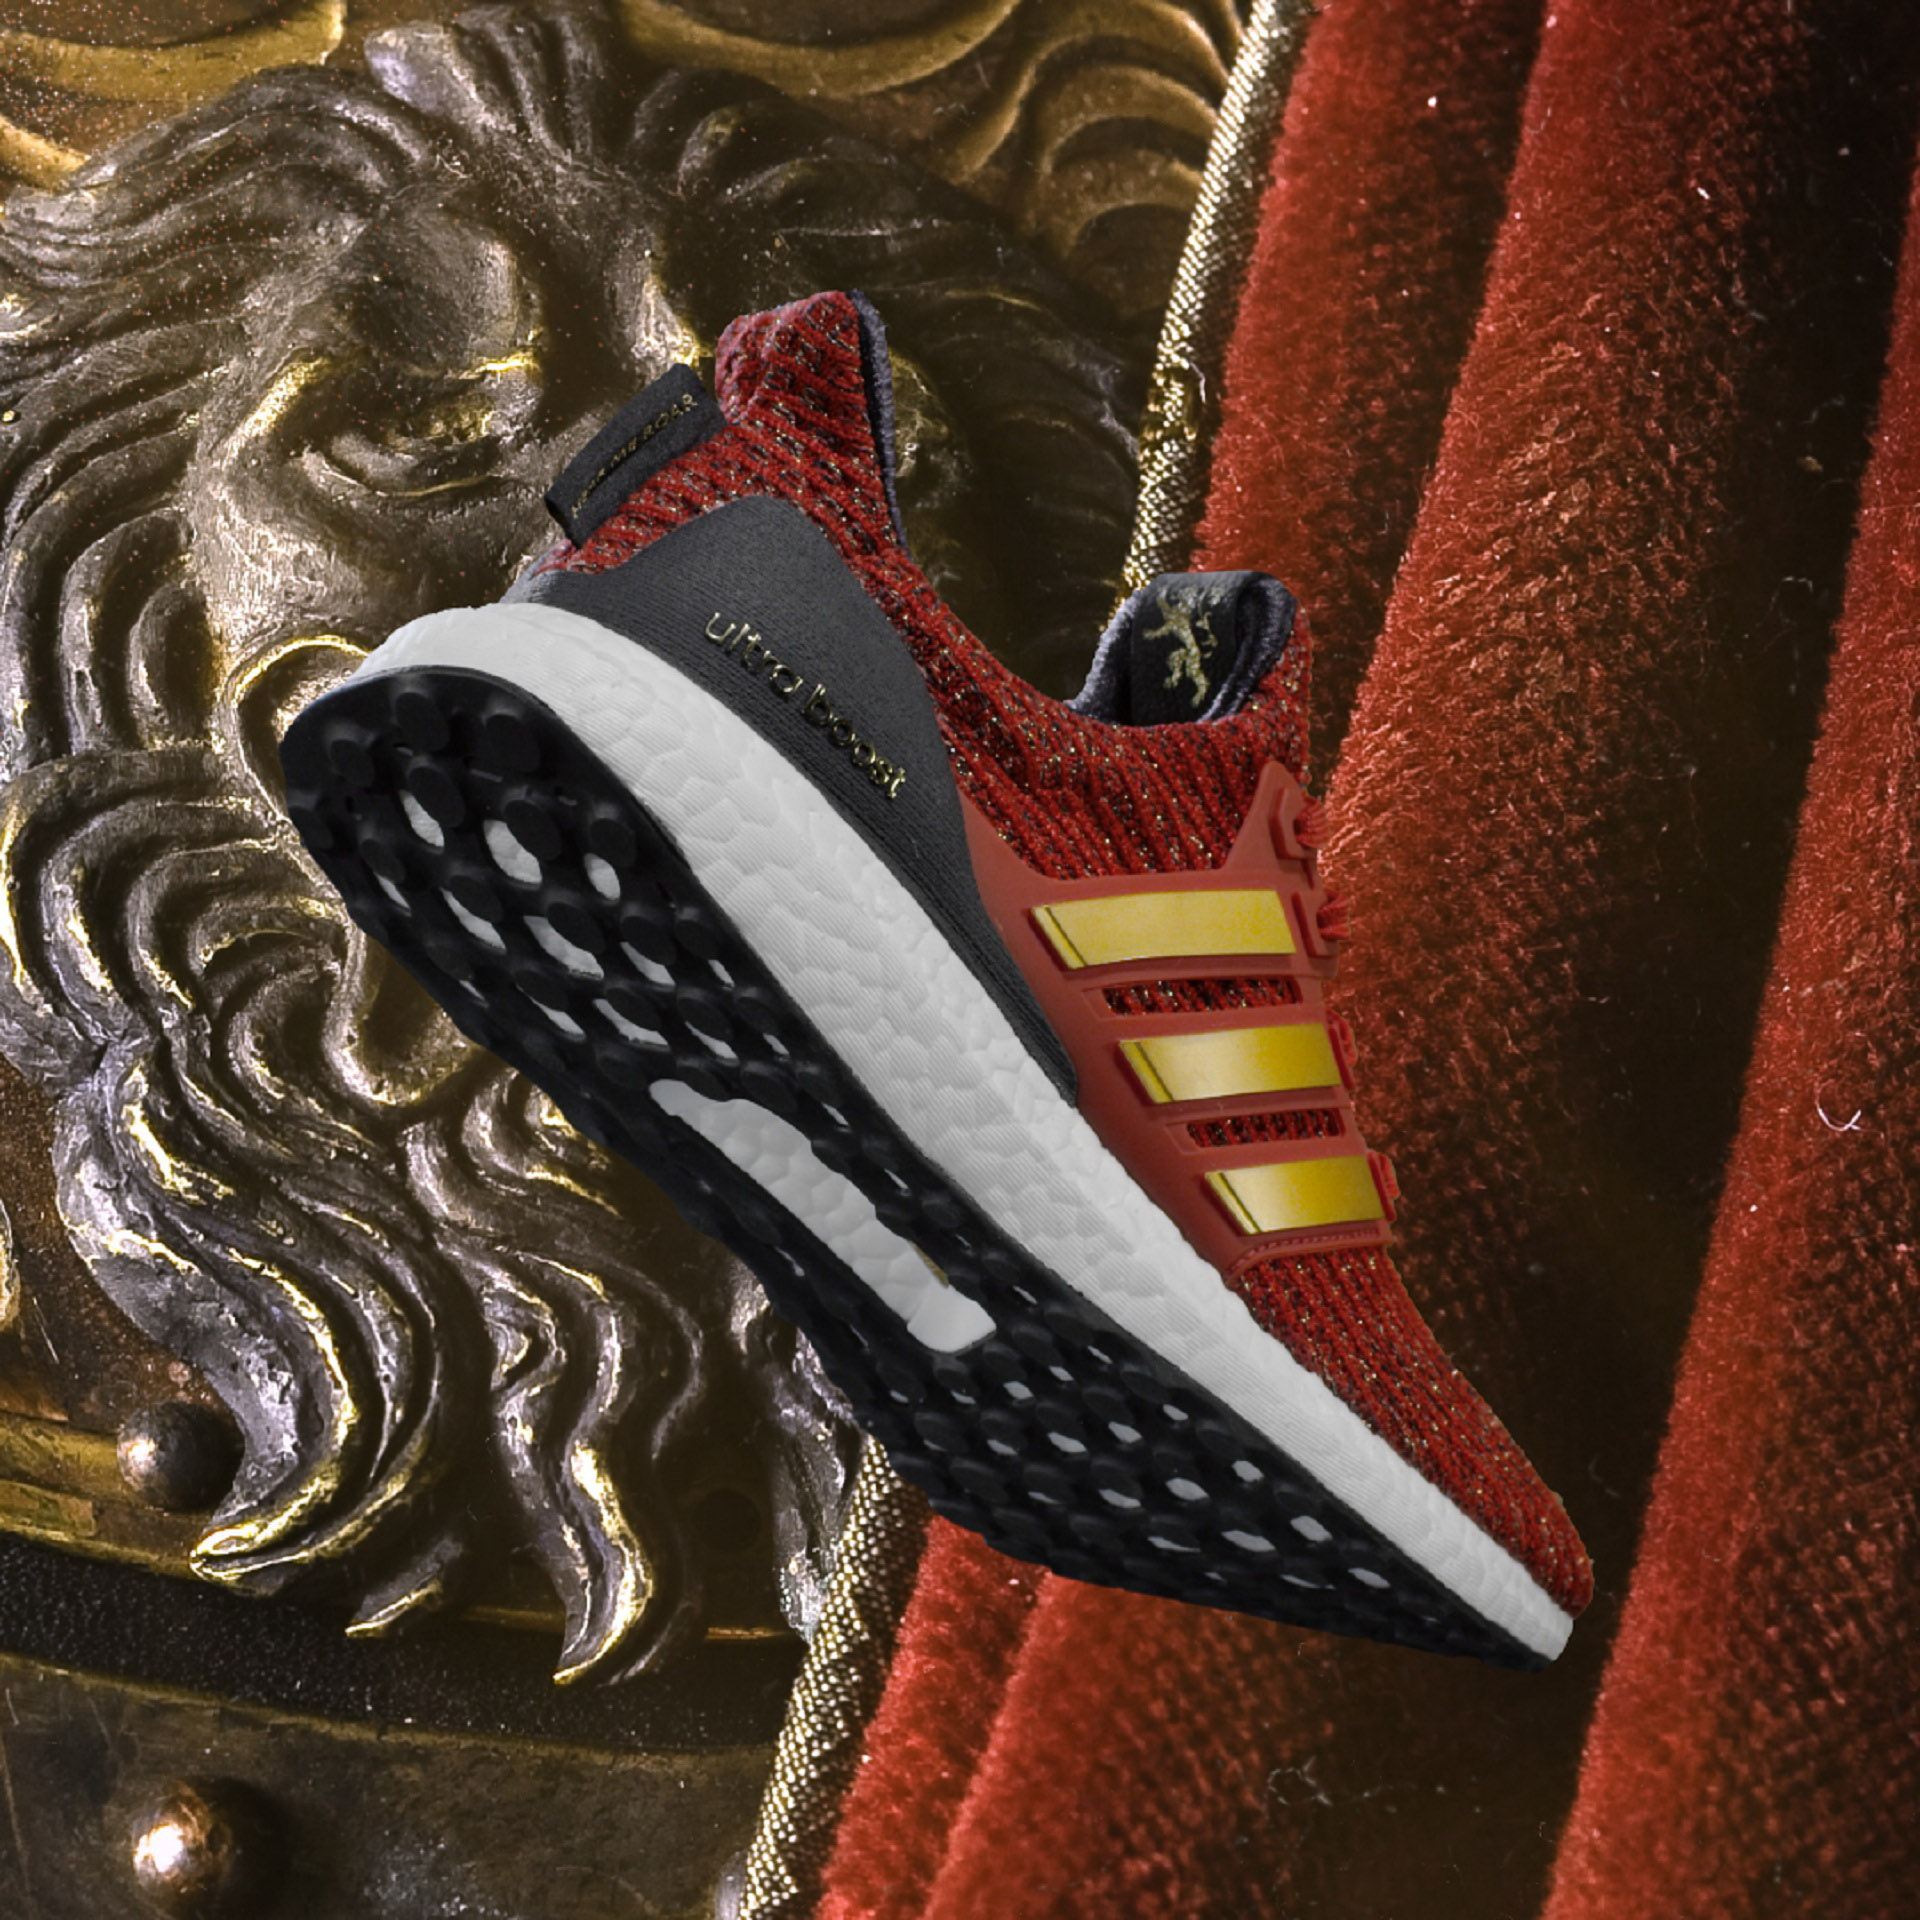 Game of Thrones x adidas UltraBOOST 18